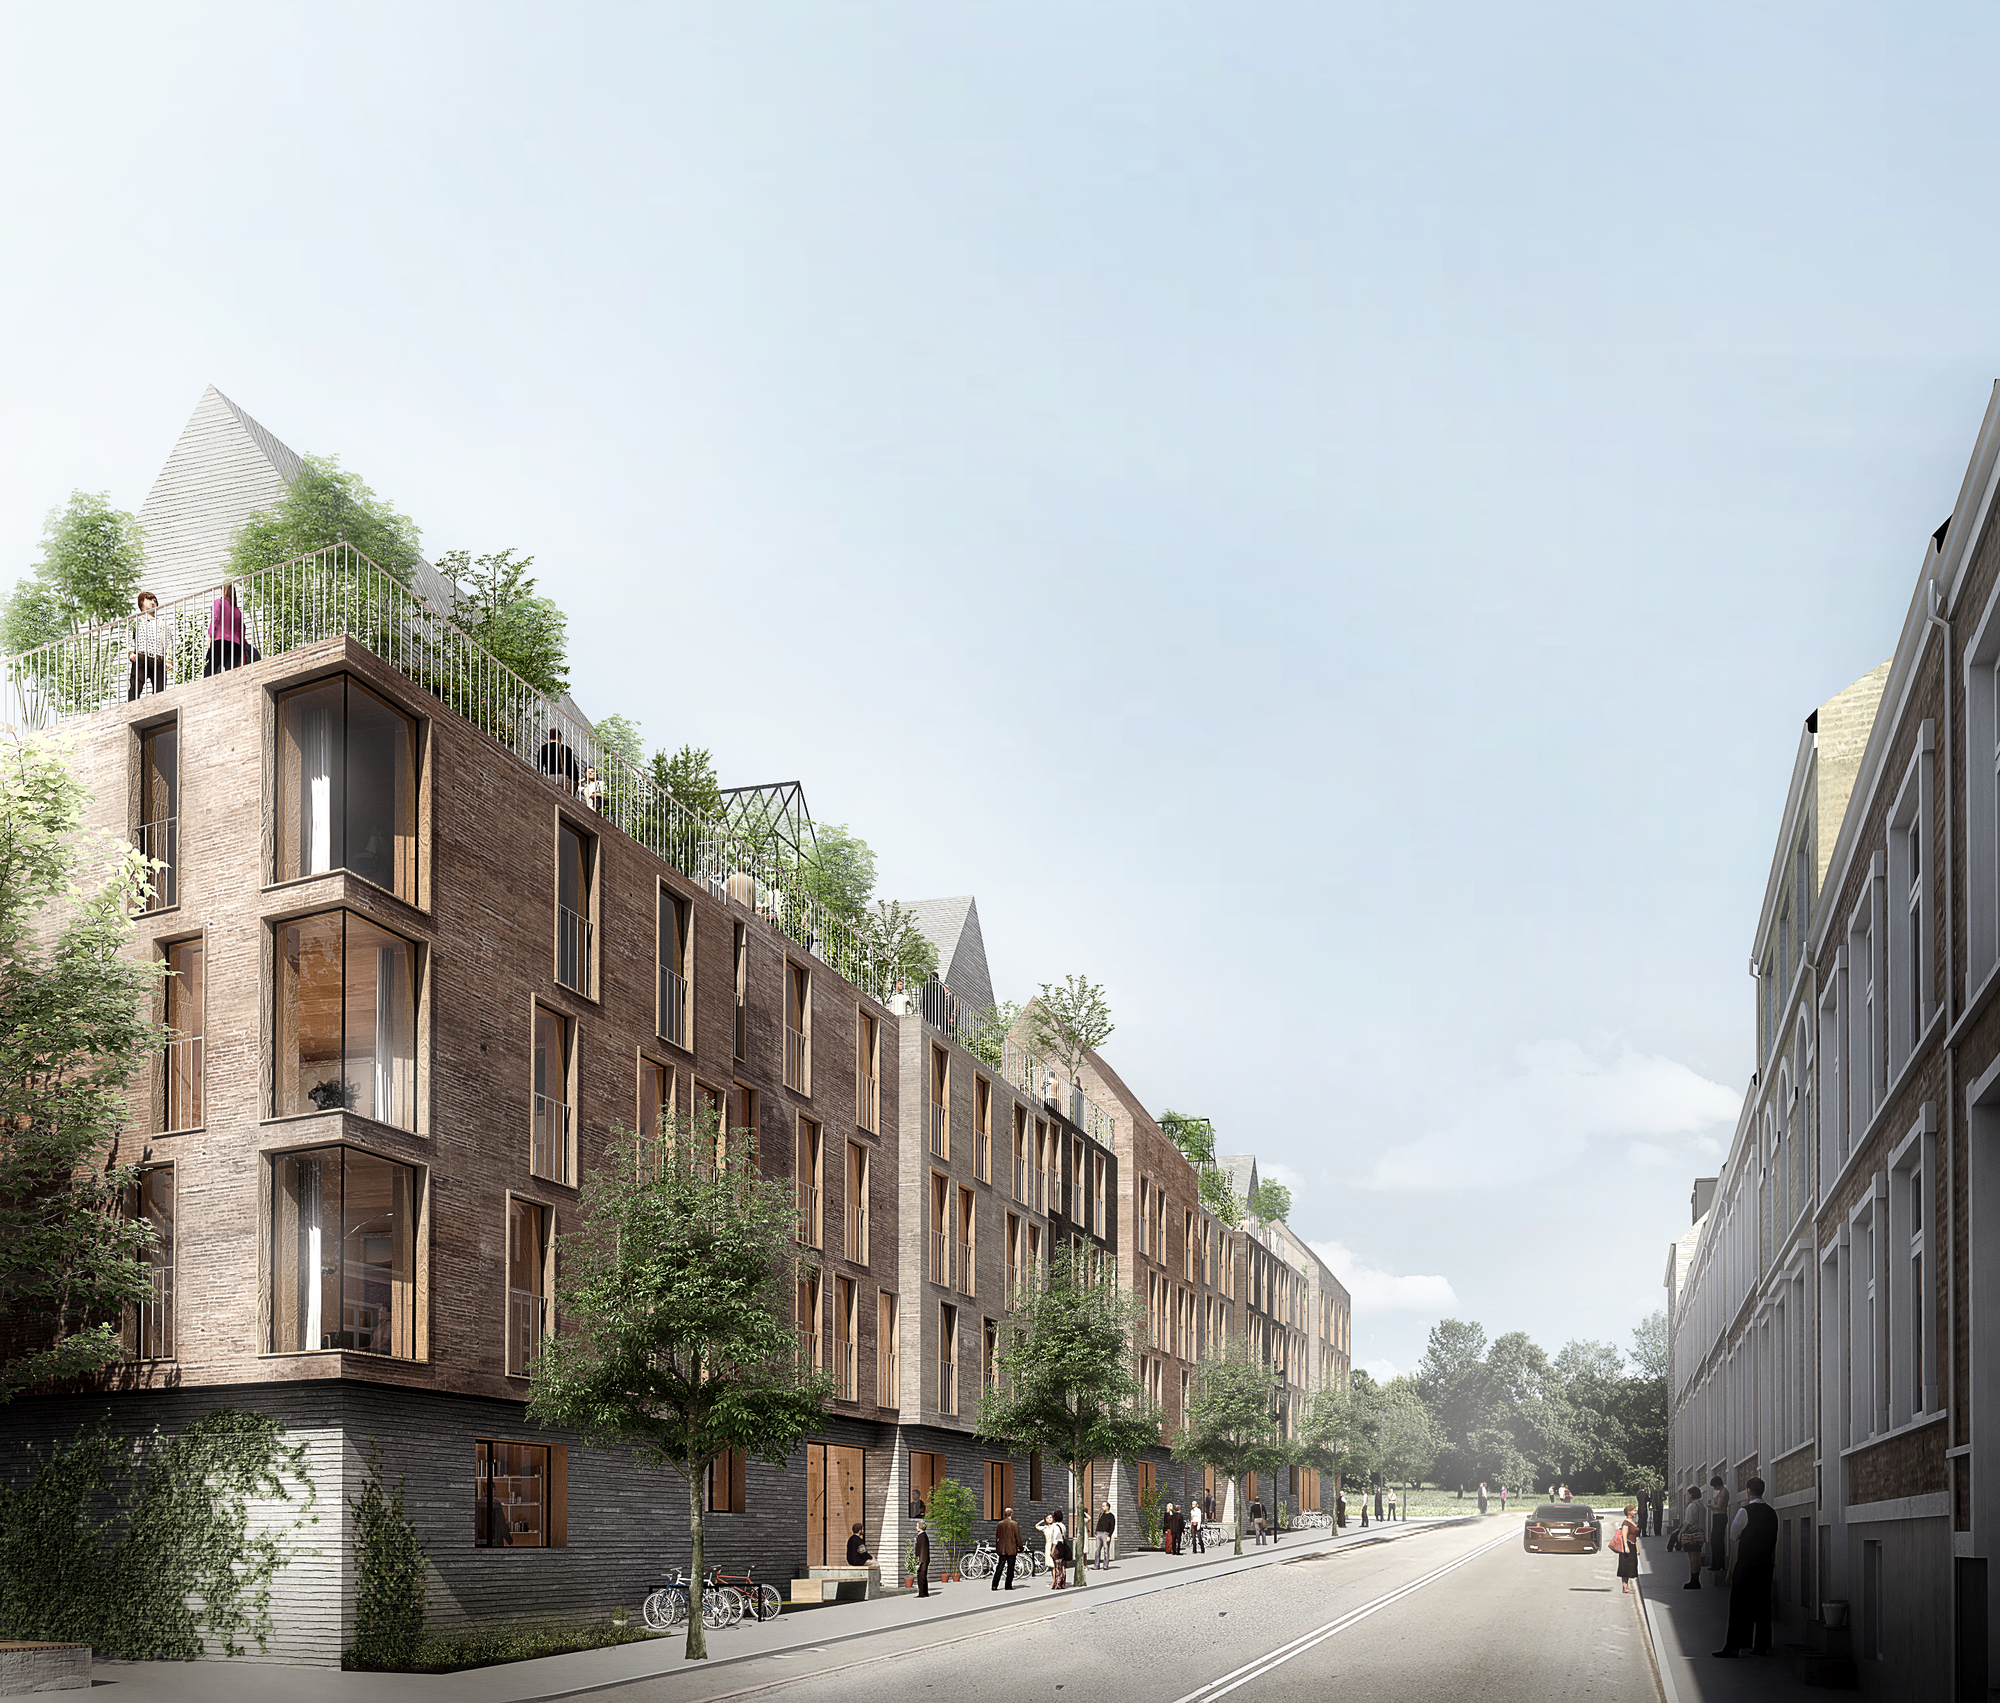 Urban Modern Apartment Design For Housing: WE Architecture's Winning Proposal Combines Green Space